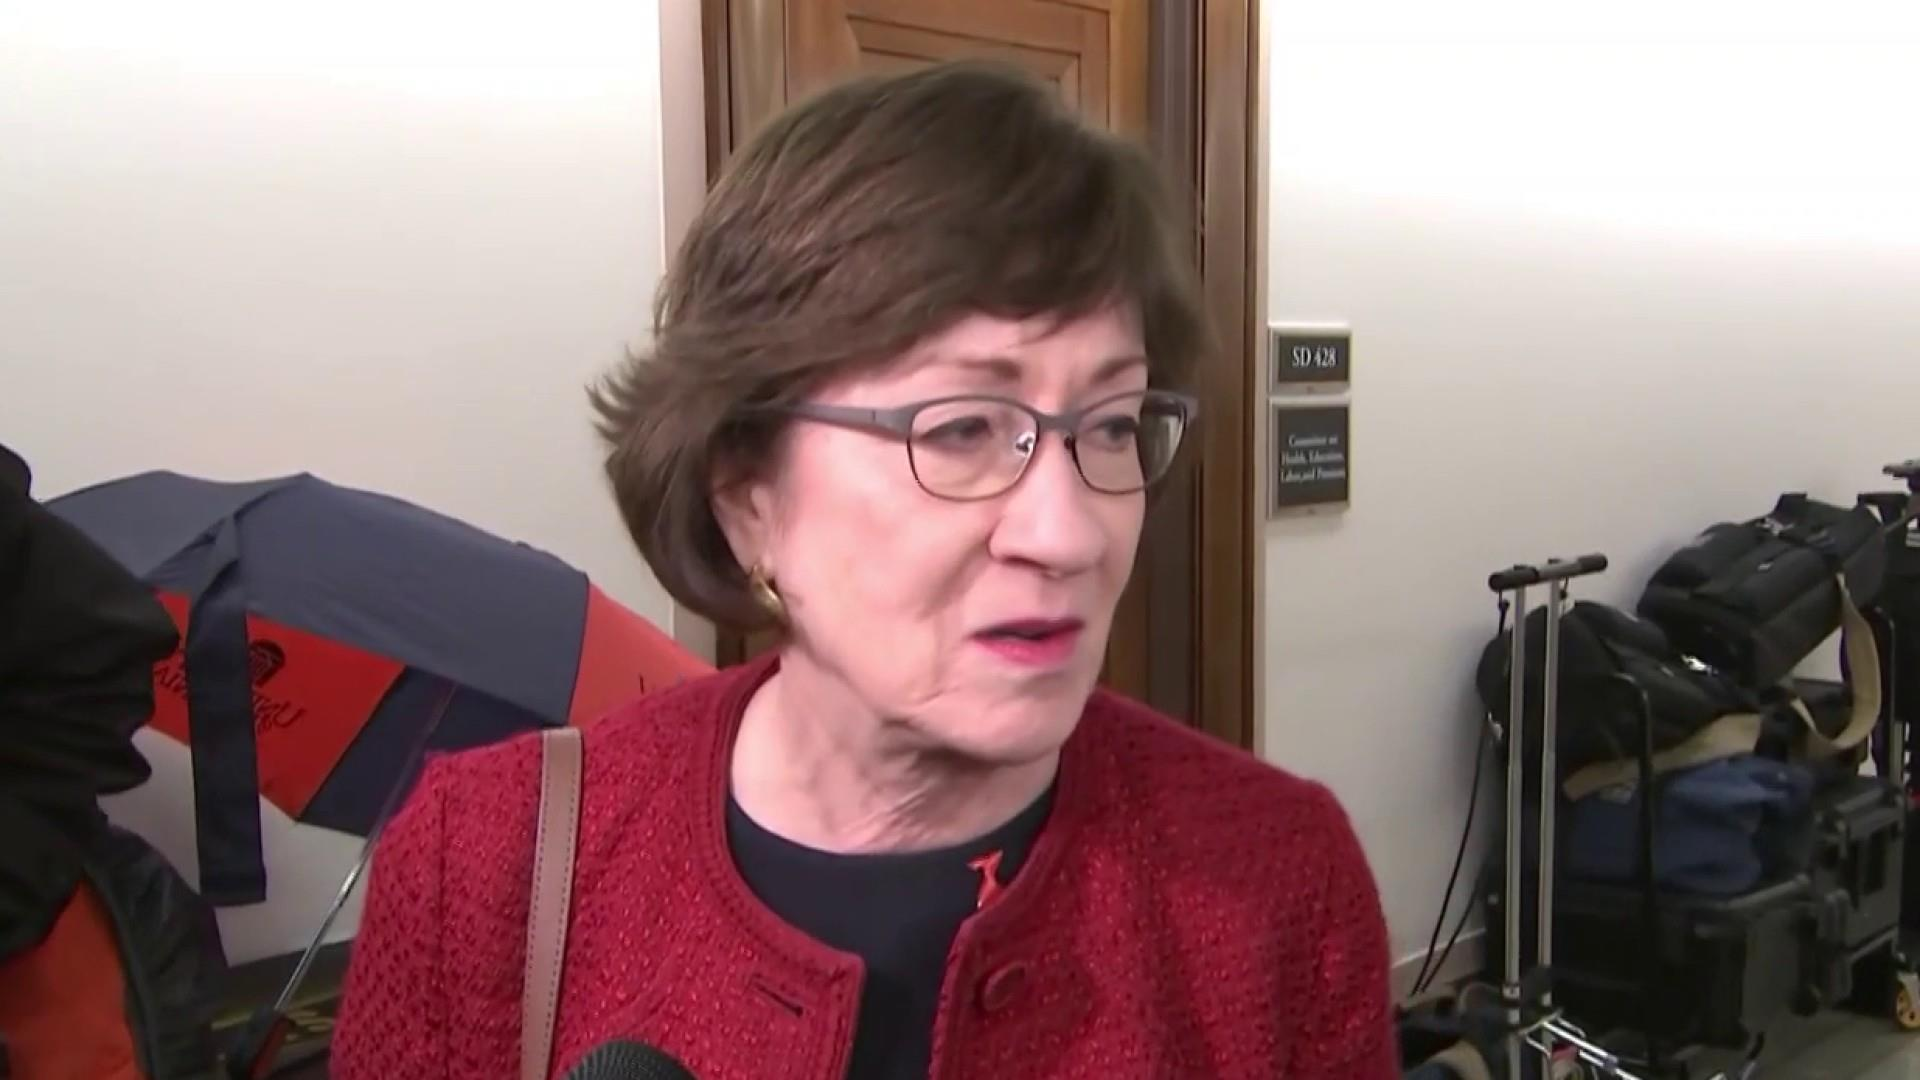 Trump Judge's anti-abortion ruling boomerangs on GOP Sen. Collins